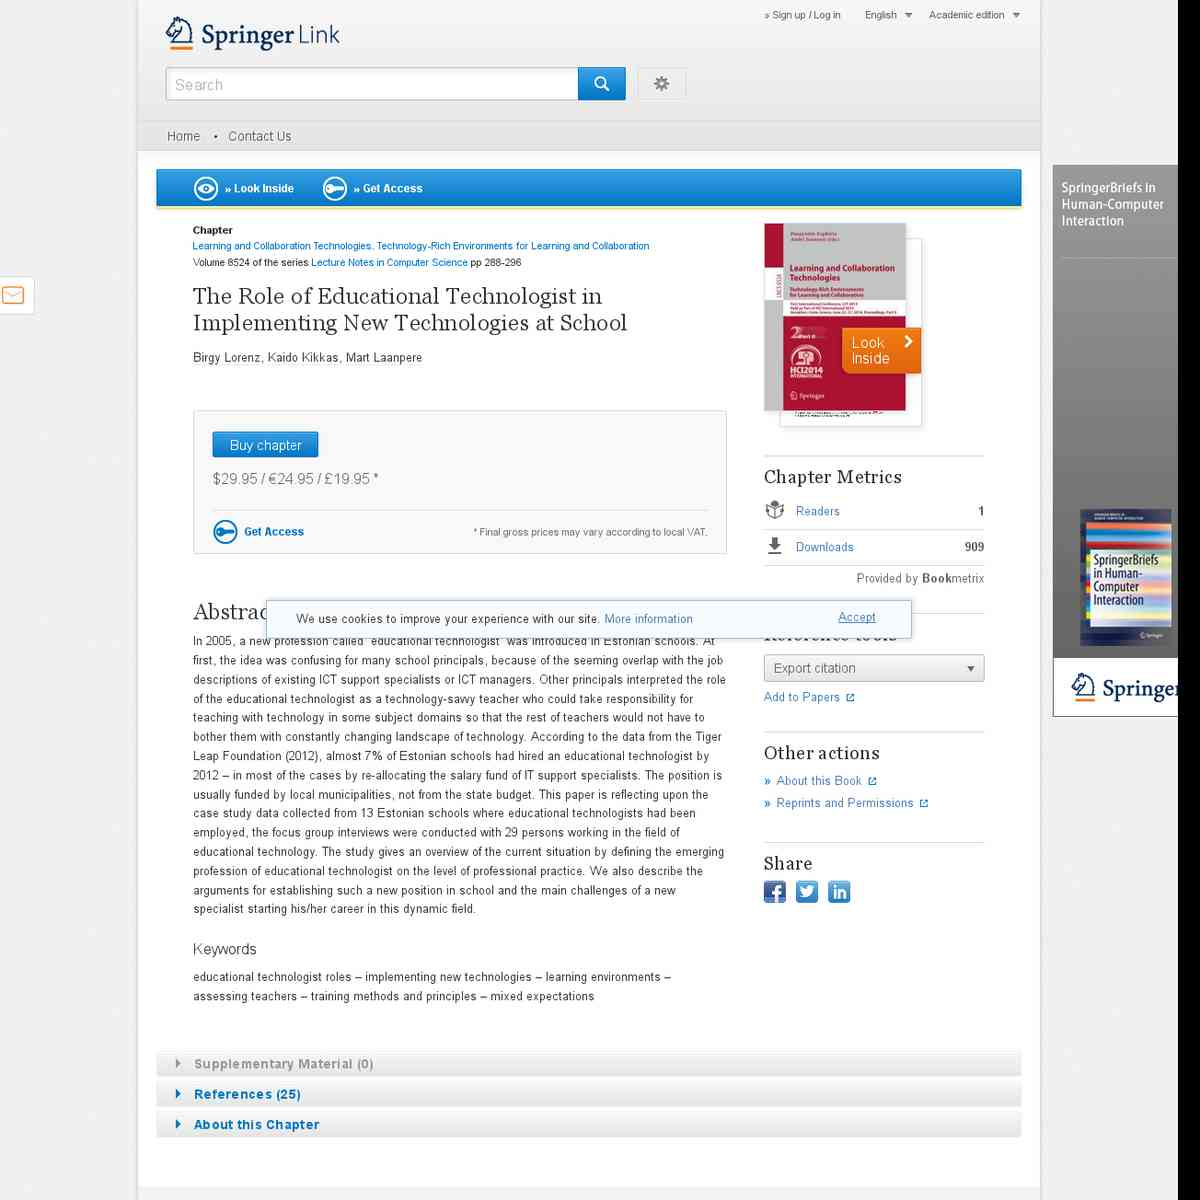 The Role of Educational Technologist in Implementing New Technologies at School - Springer